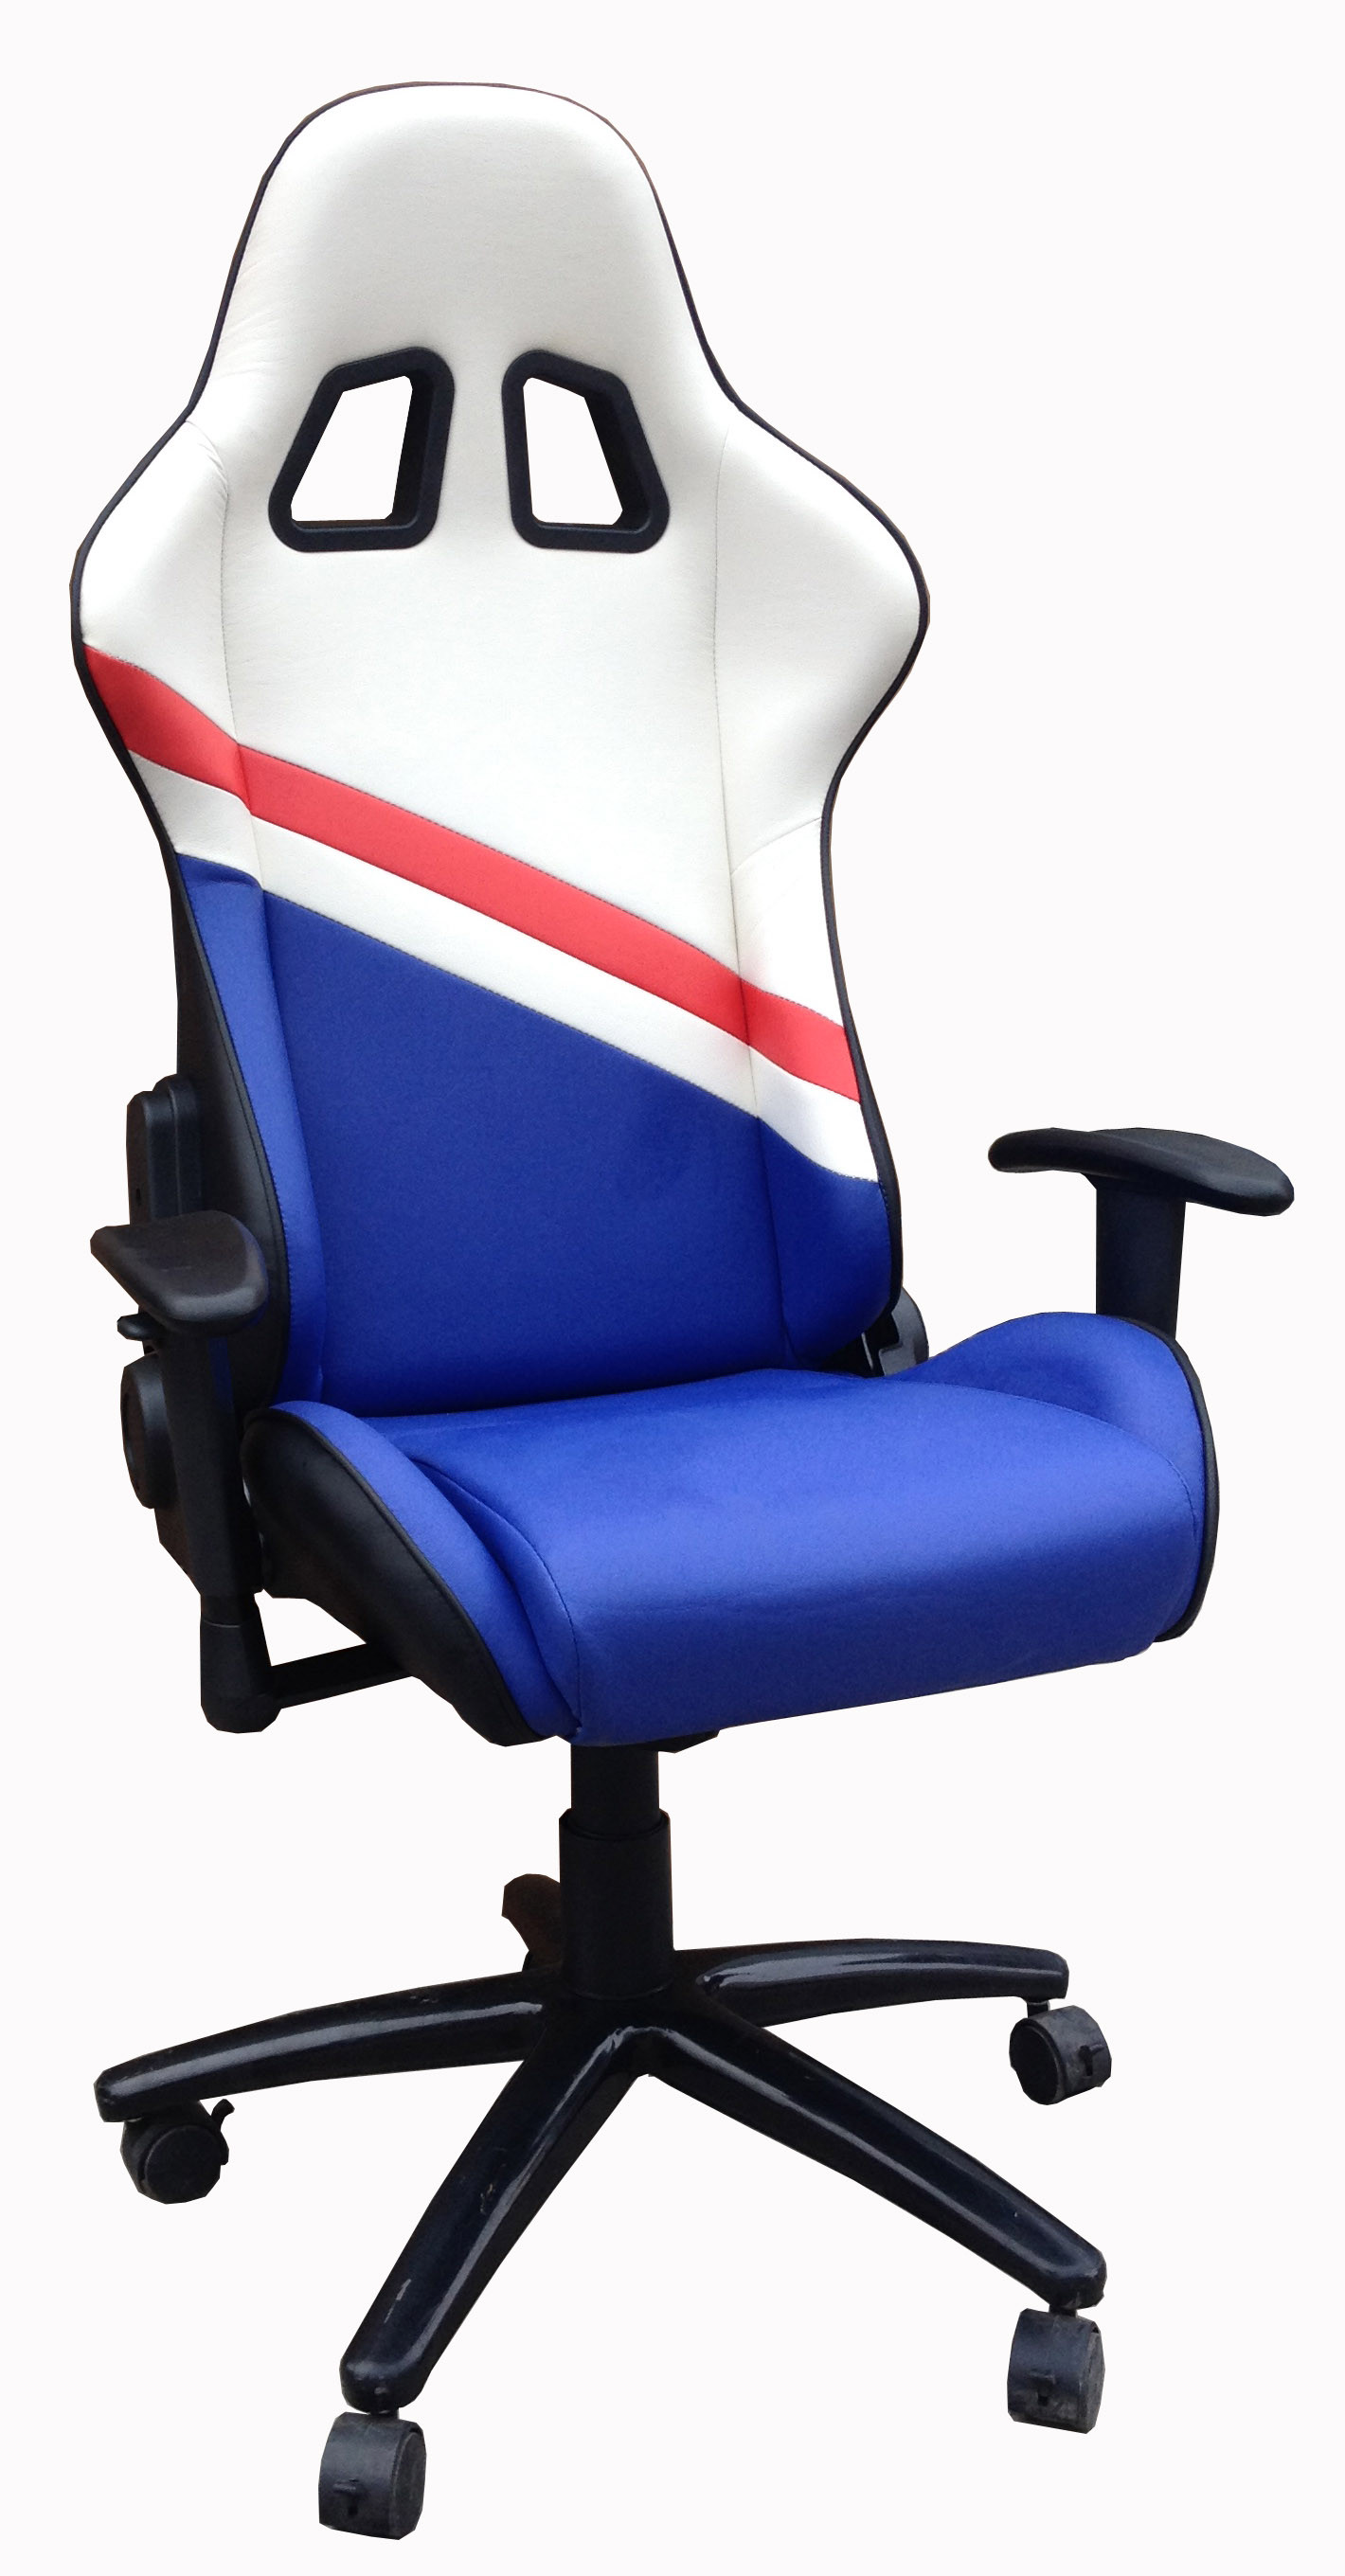 durable pvc home office chair. Durable PU Leather Adjustable Office Chair For Work , Study Rest And Sleep Pvc Home W